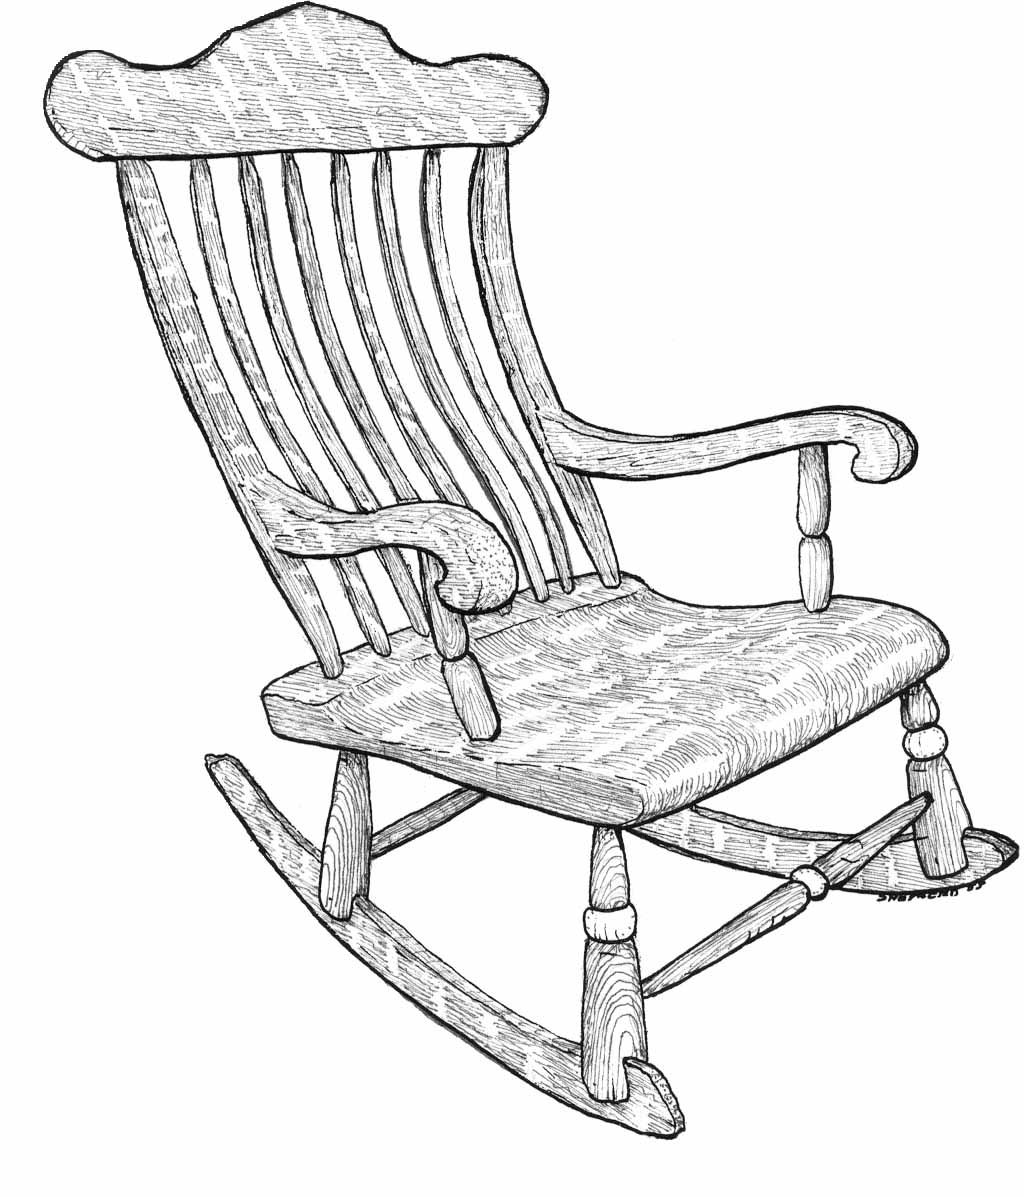 Rocking Chair Drawing Google Search Chair Drawing Patterned Chair Rocking Chair